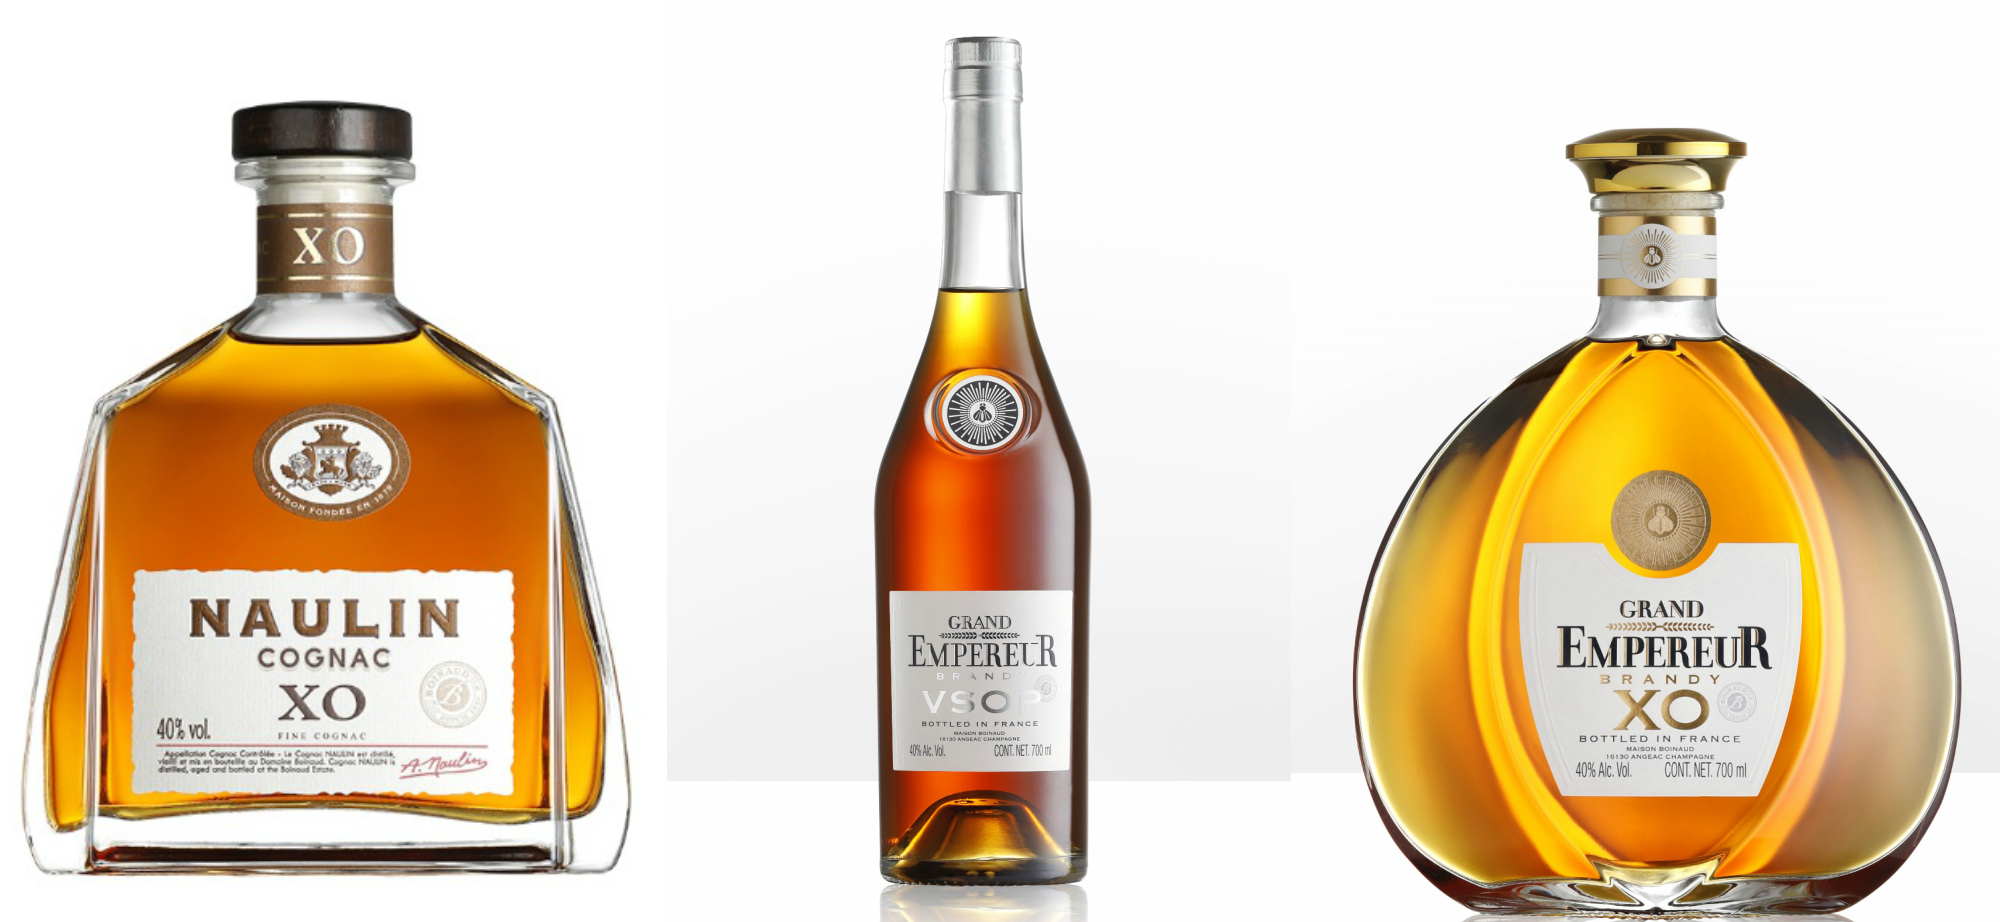 Cognac Naulin kosher for Passover